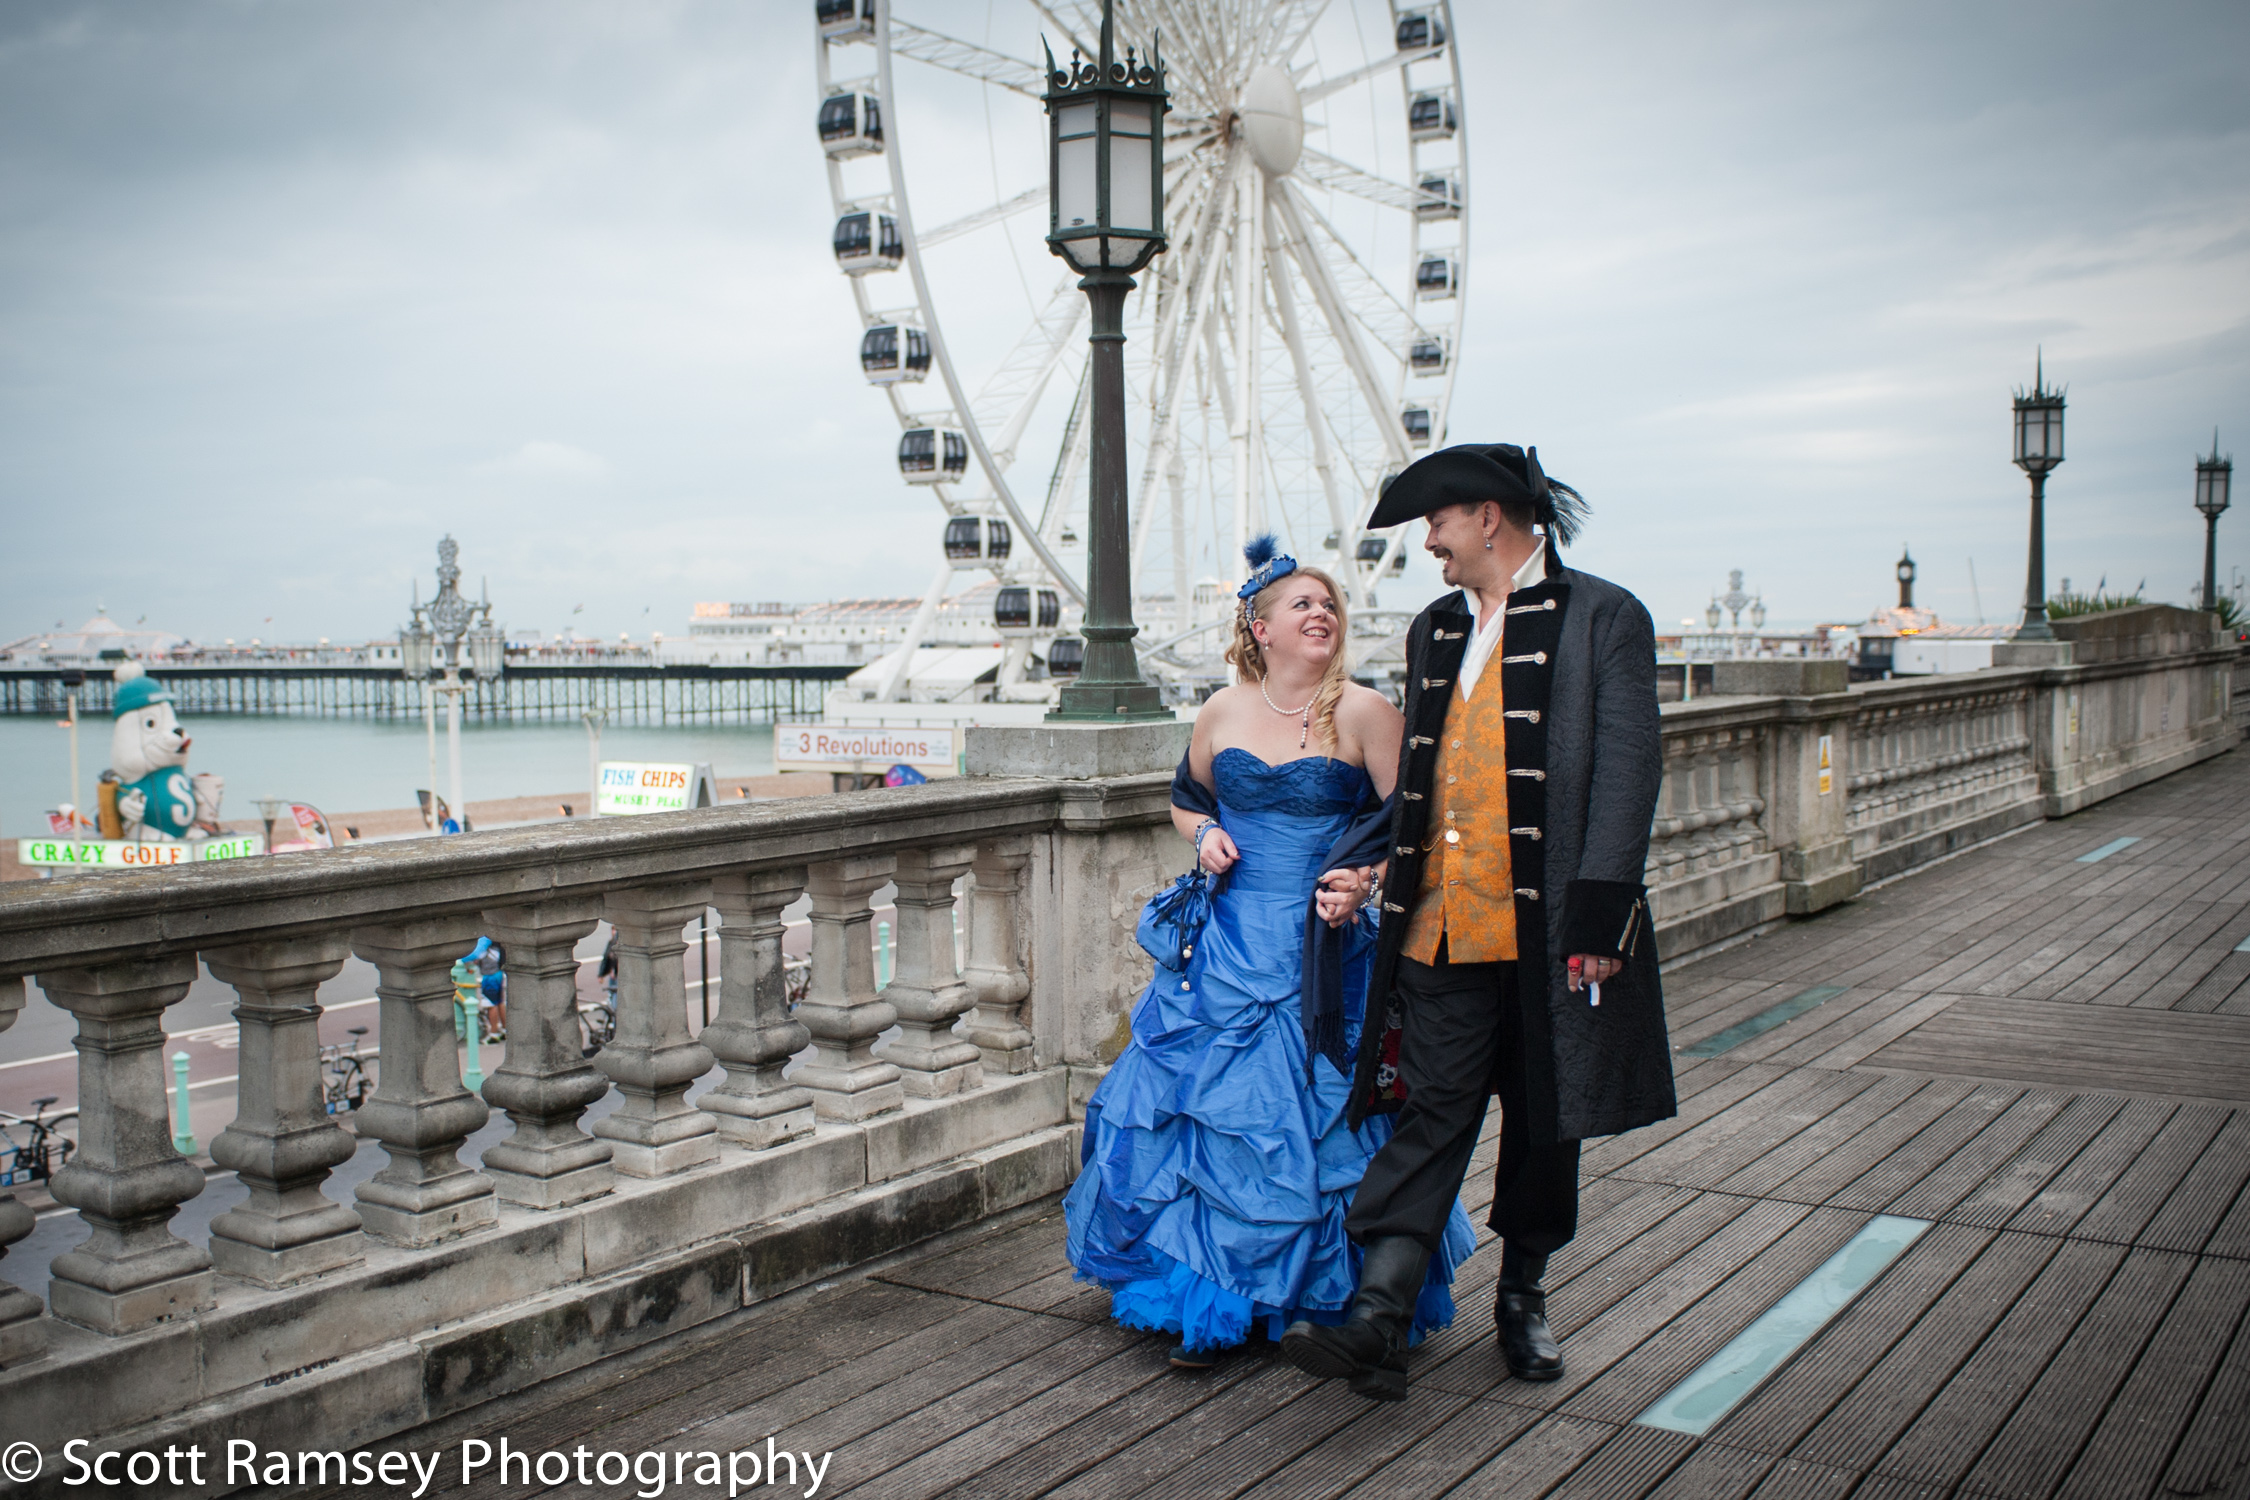 Wedding Photography in Brighton. A very fun Pirate themed wedding in Brighton, East Sussex. In Pic; The Bride and Groom (Dressed as a Pirate) walk hand in hand past the wheel on the seafront in Brighton.